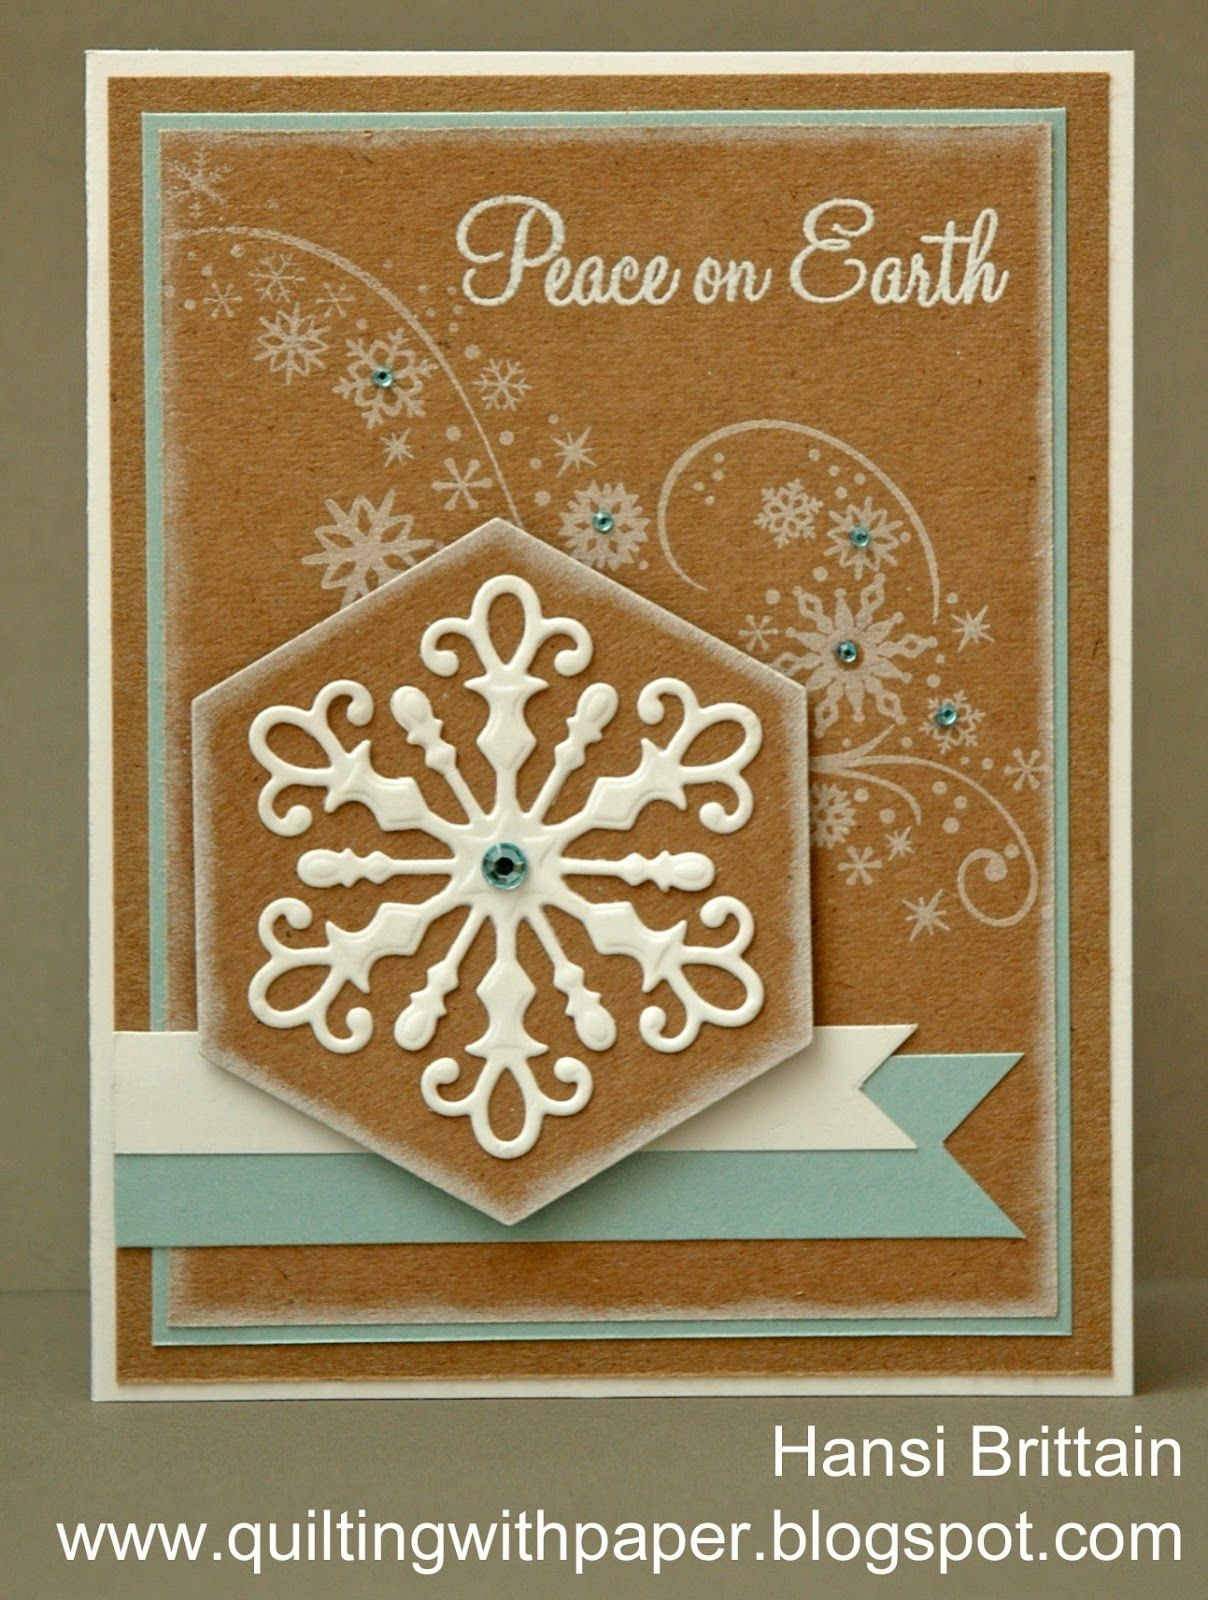 Quilting With Paper: Inspired by Gift Bags